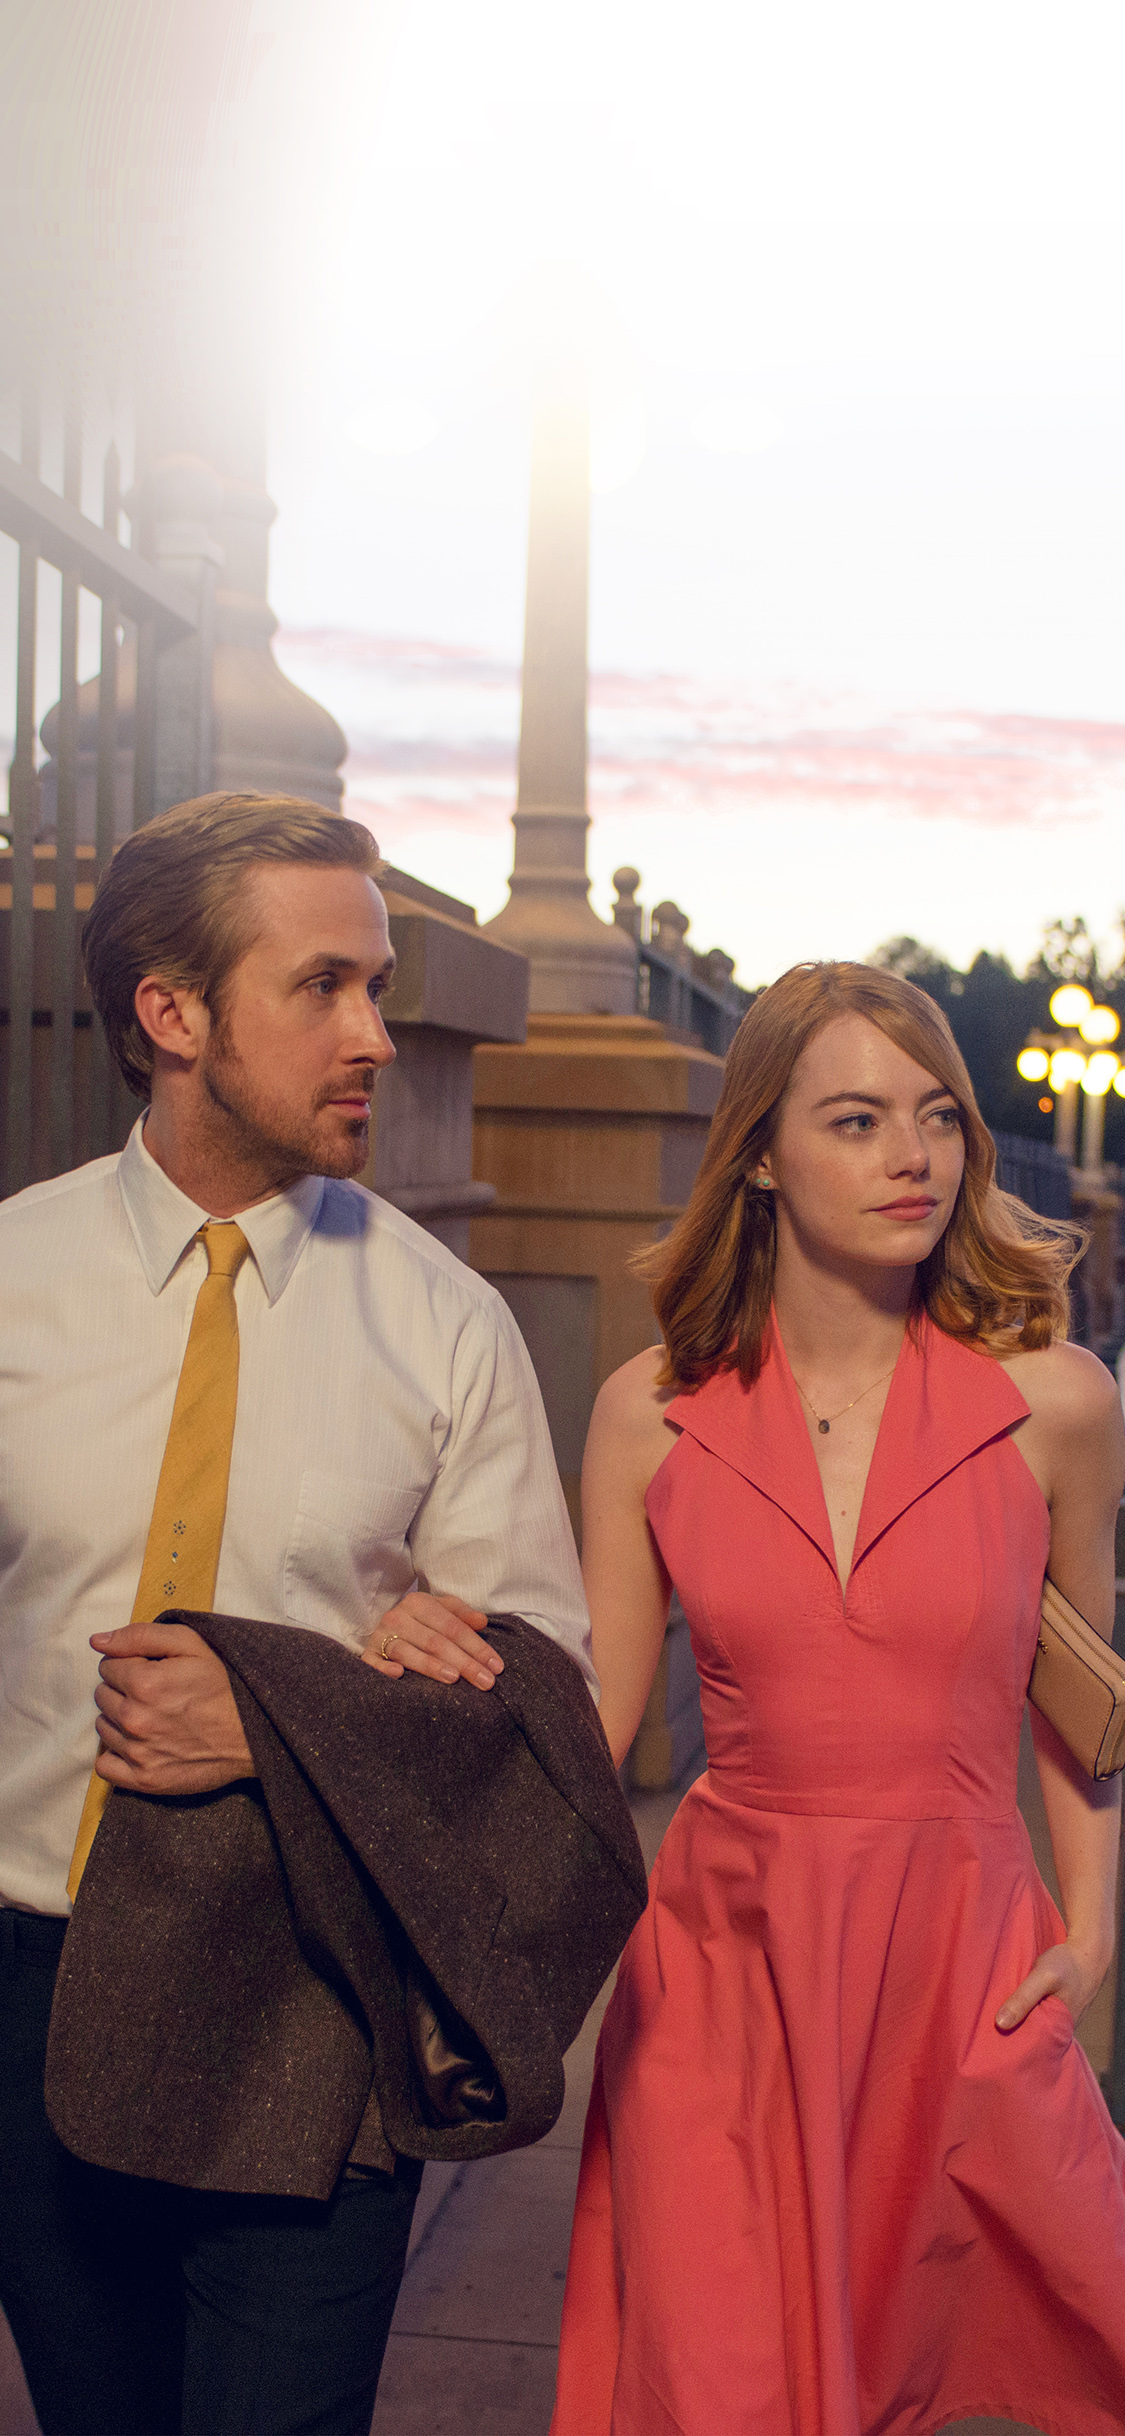 iPhoneXpapers.com-Apple-iPhone-wallpaper-hl40-lalaland-ryan-gosling-emma-stone-red-film